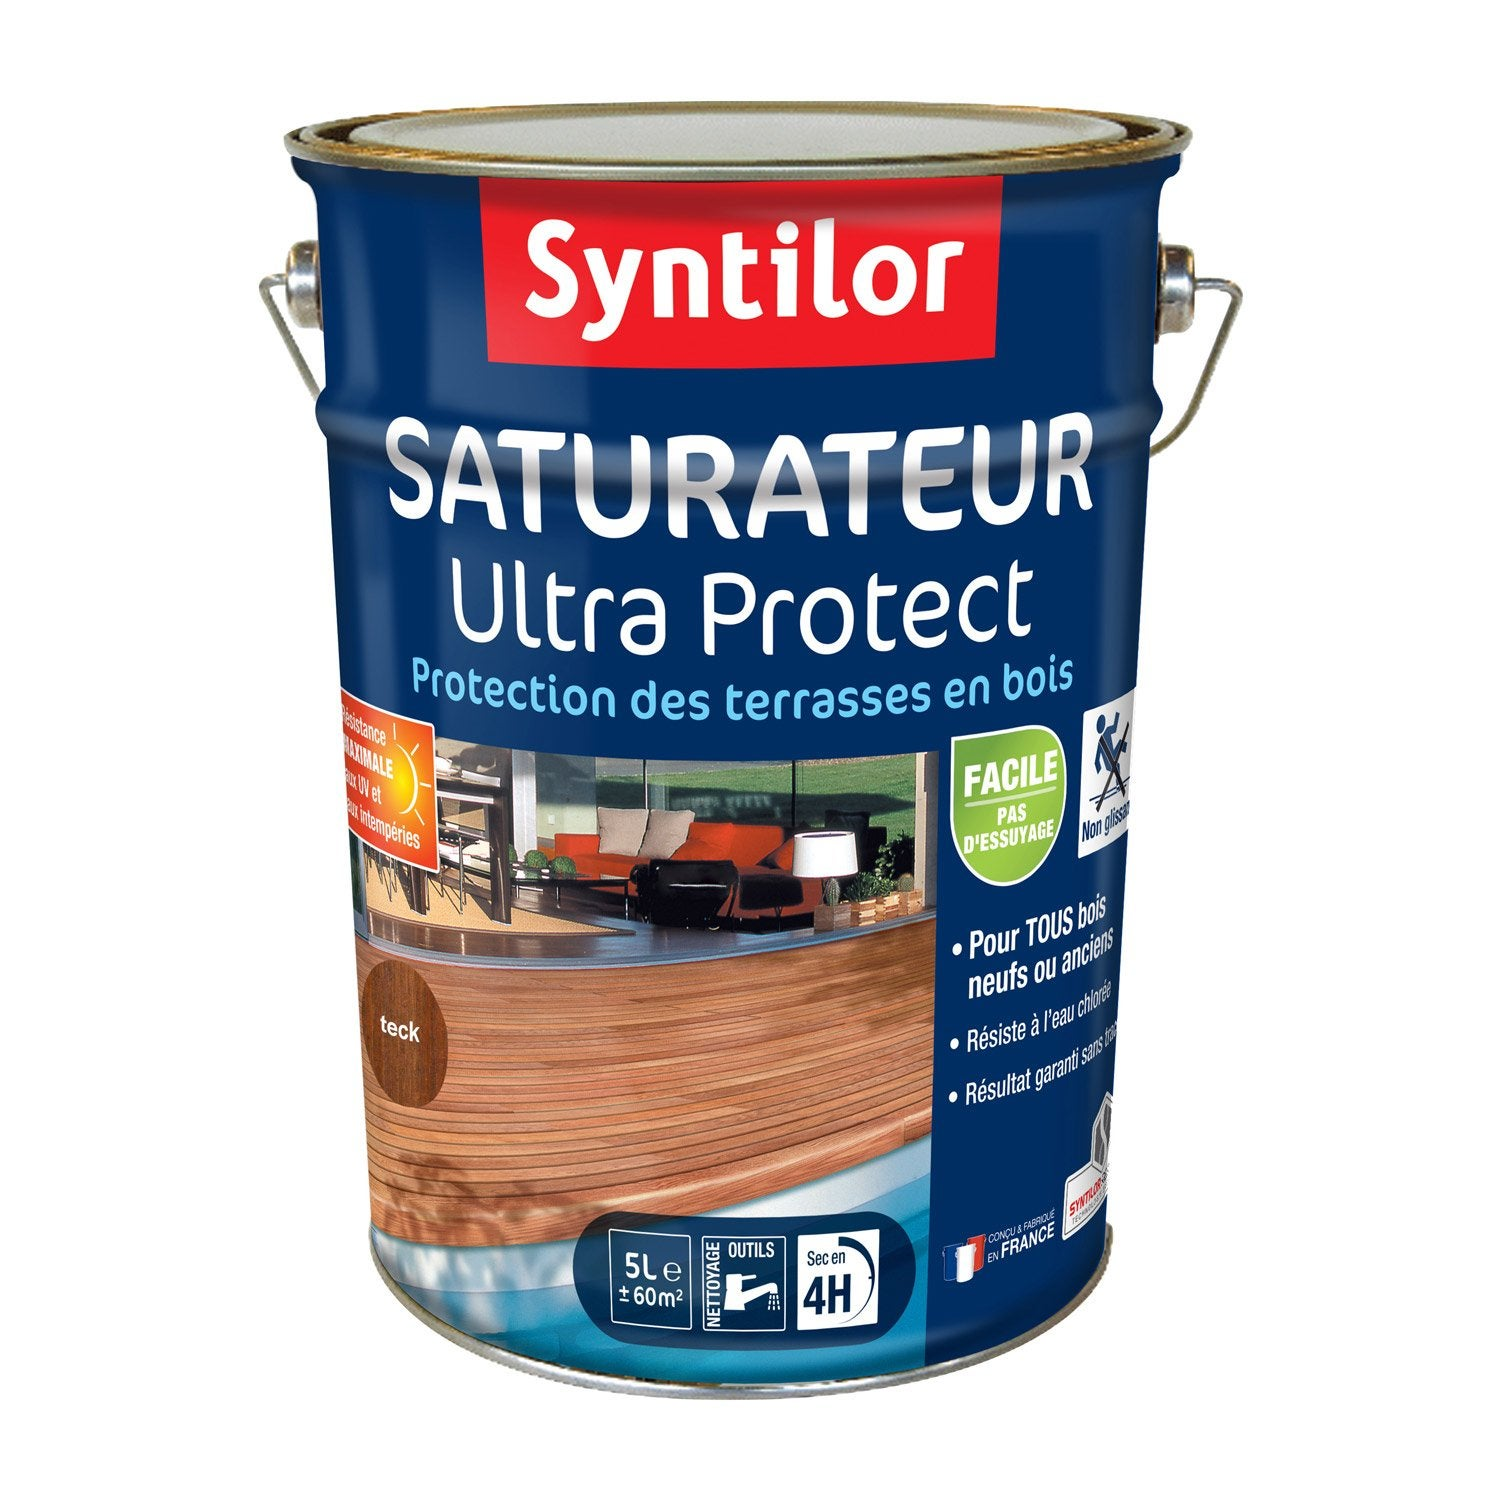 Saturateur pour bois Ultra protect syntilor teck, 5 l Leroy Merlin # Saturateur Bois Leroy Merlin